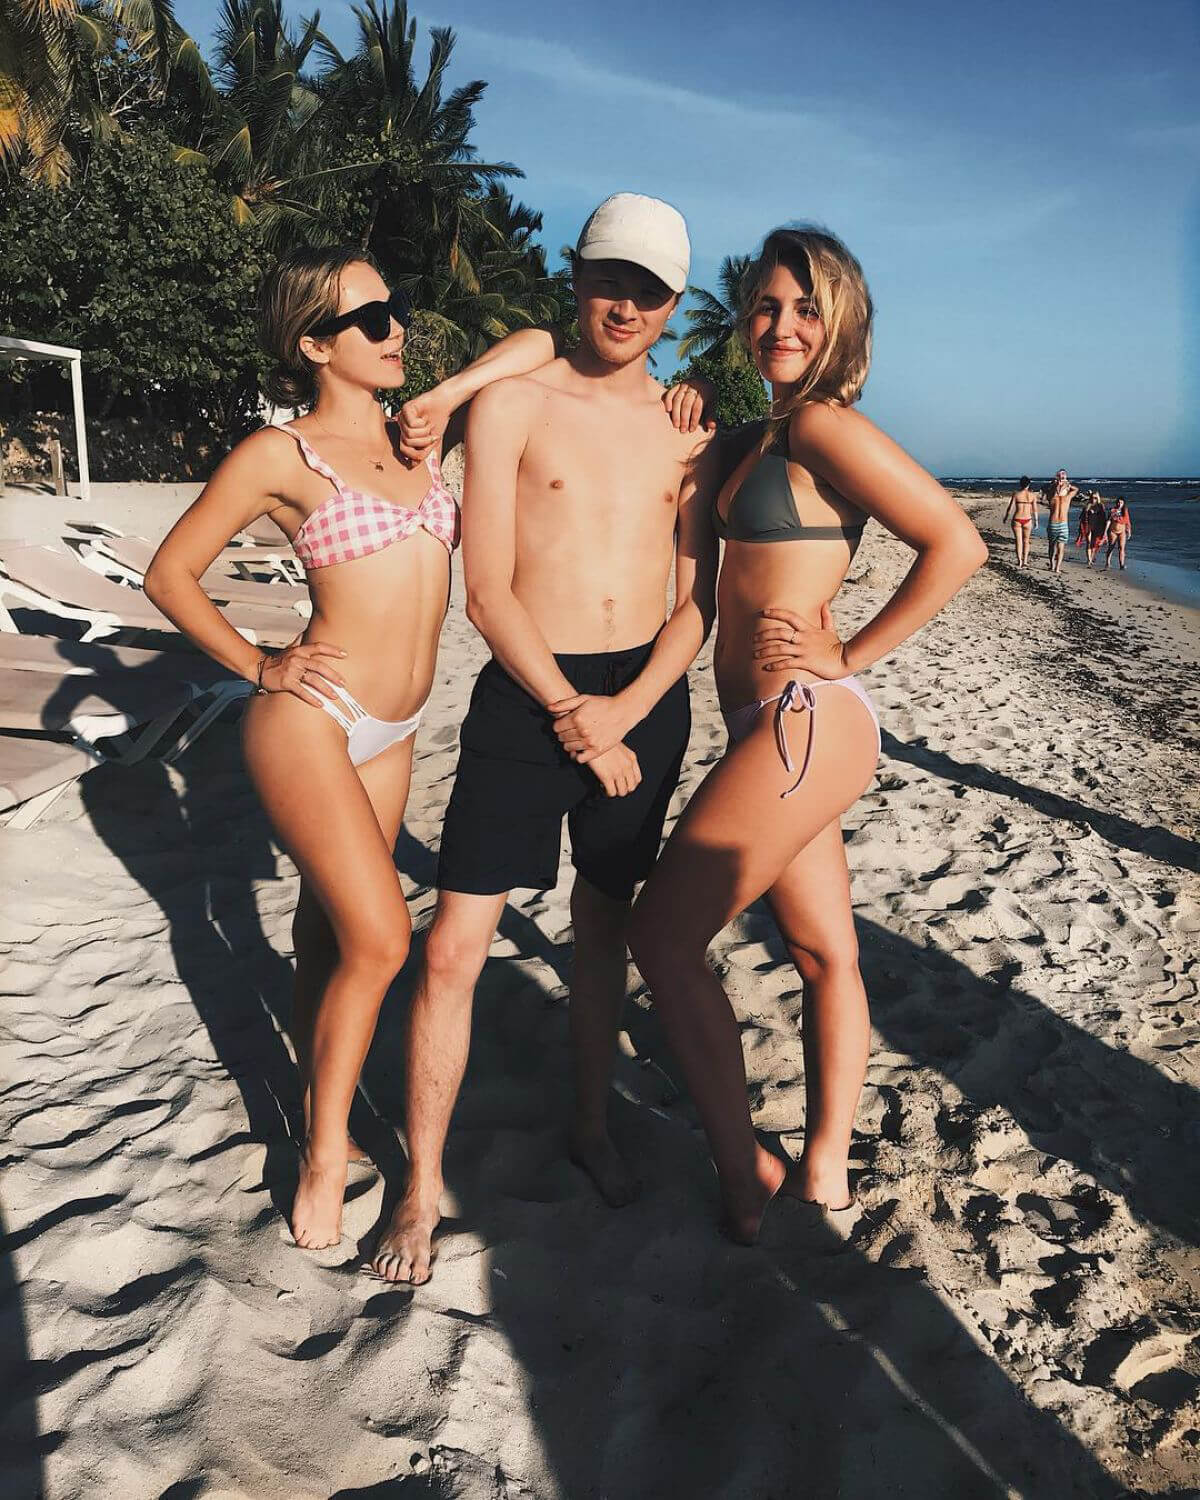 Brec Bassinger in Bikini, Instagram Pictures December 2018 1